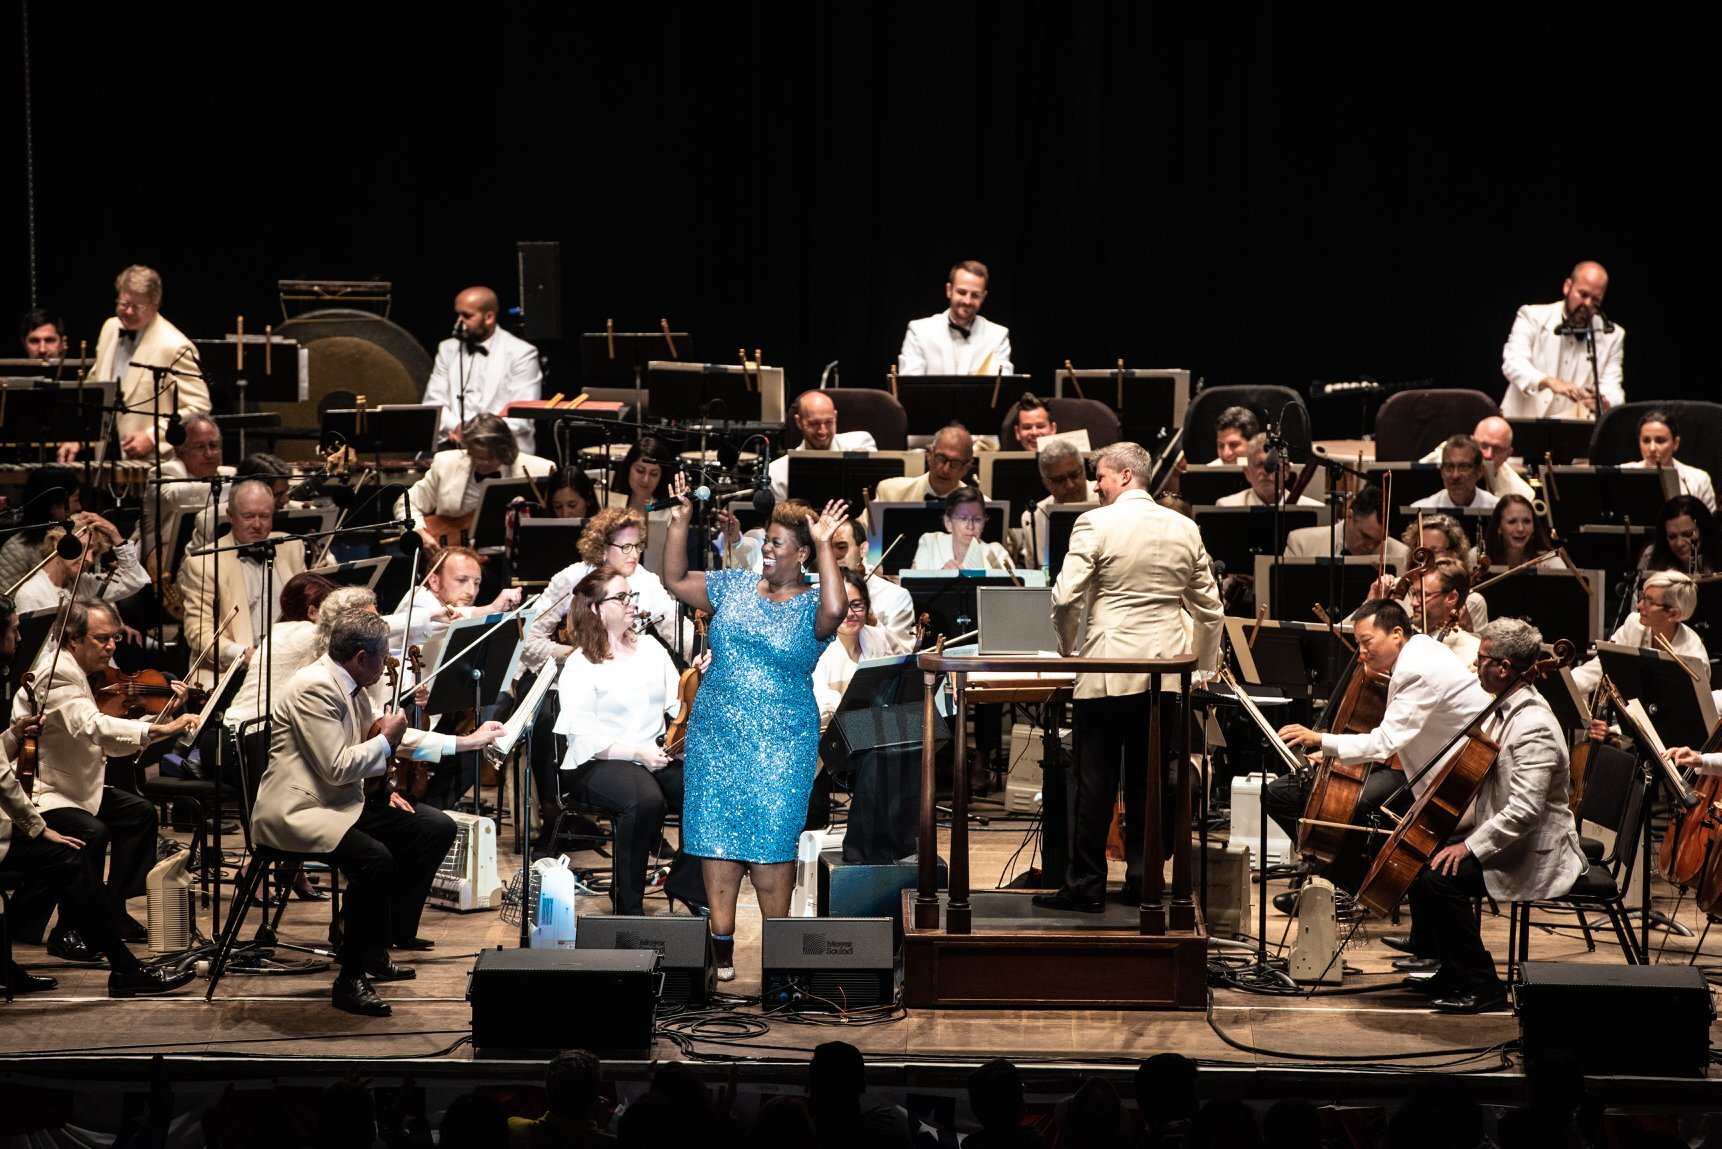 Capathia Jenkins and the SF Symphony at Shoreline Amphitheater - July 4, 2019  Photograph by Chris Tuite /  www.christuitephoto.com